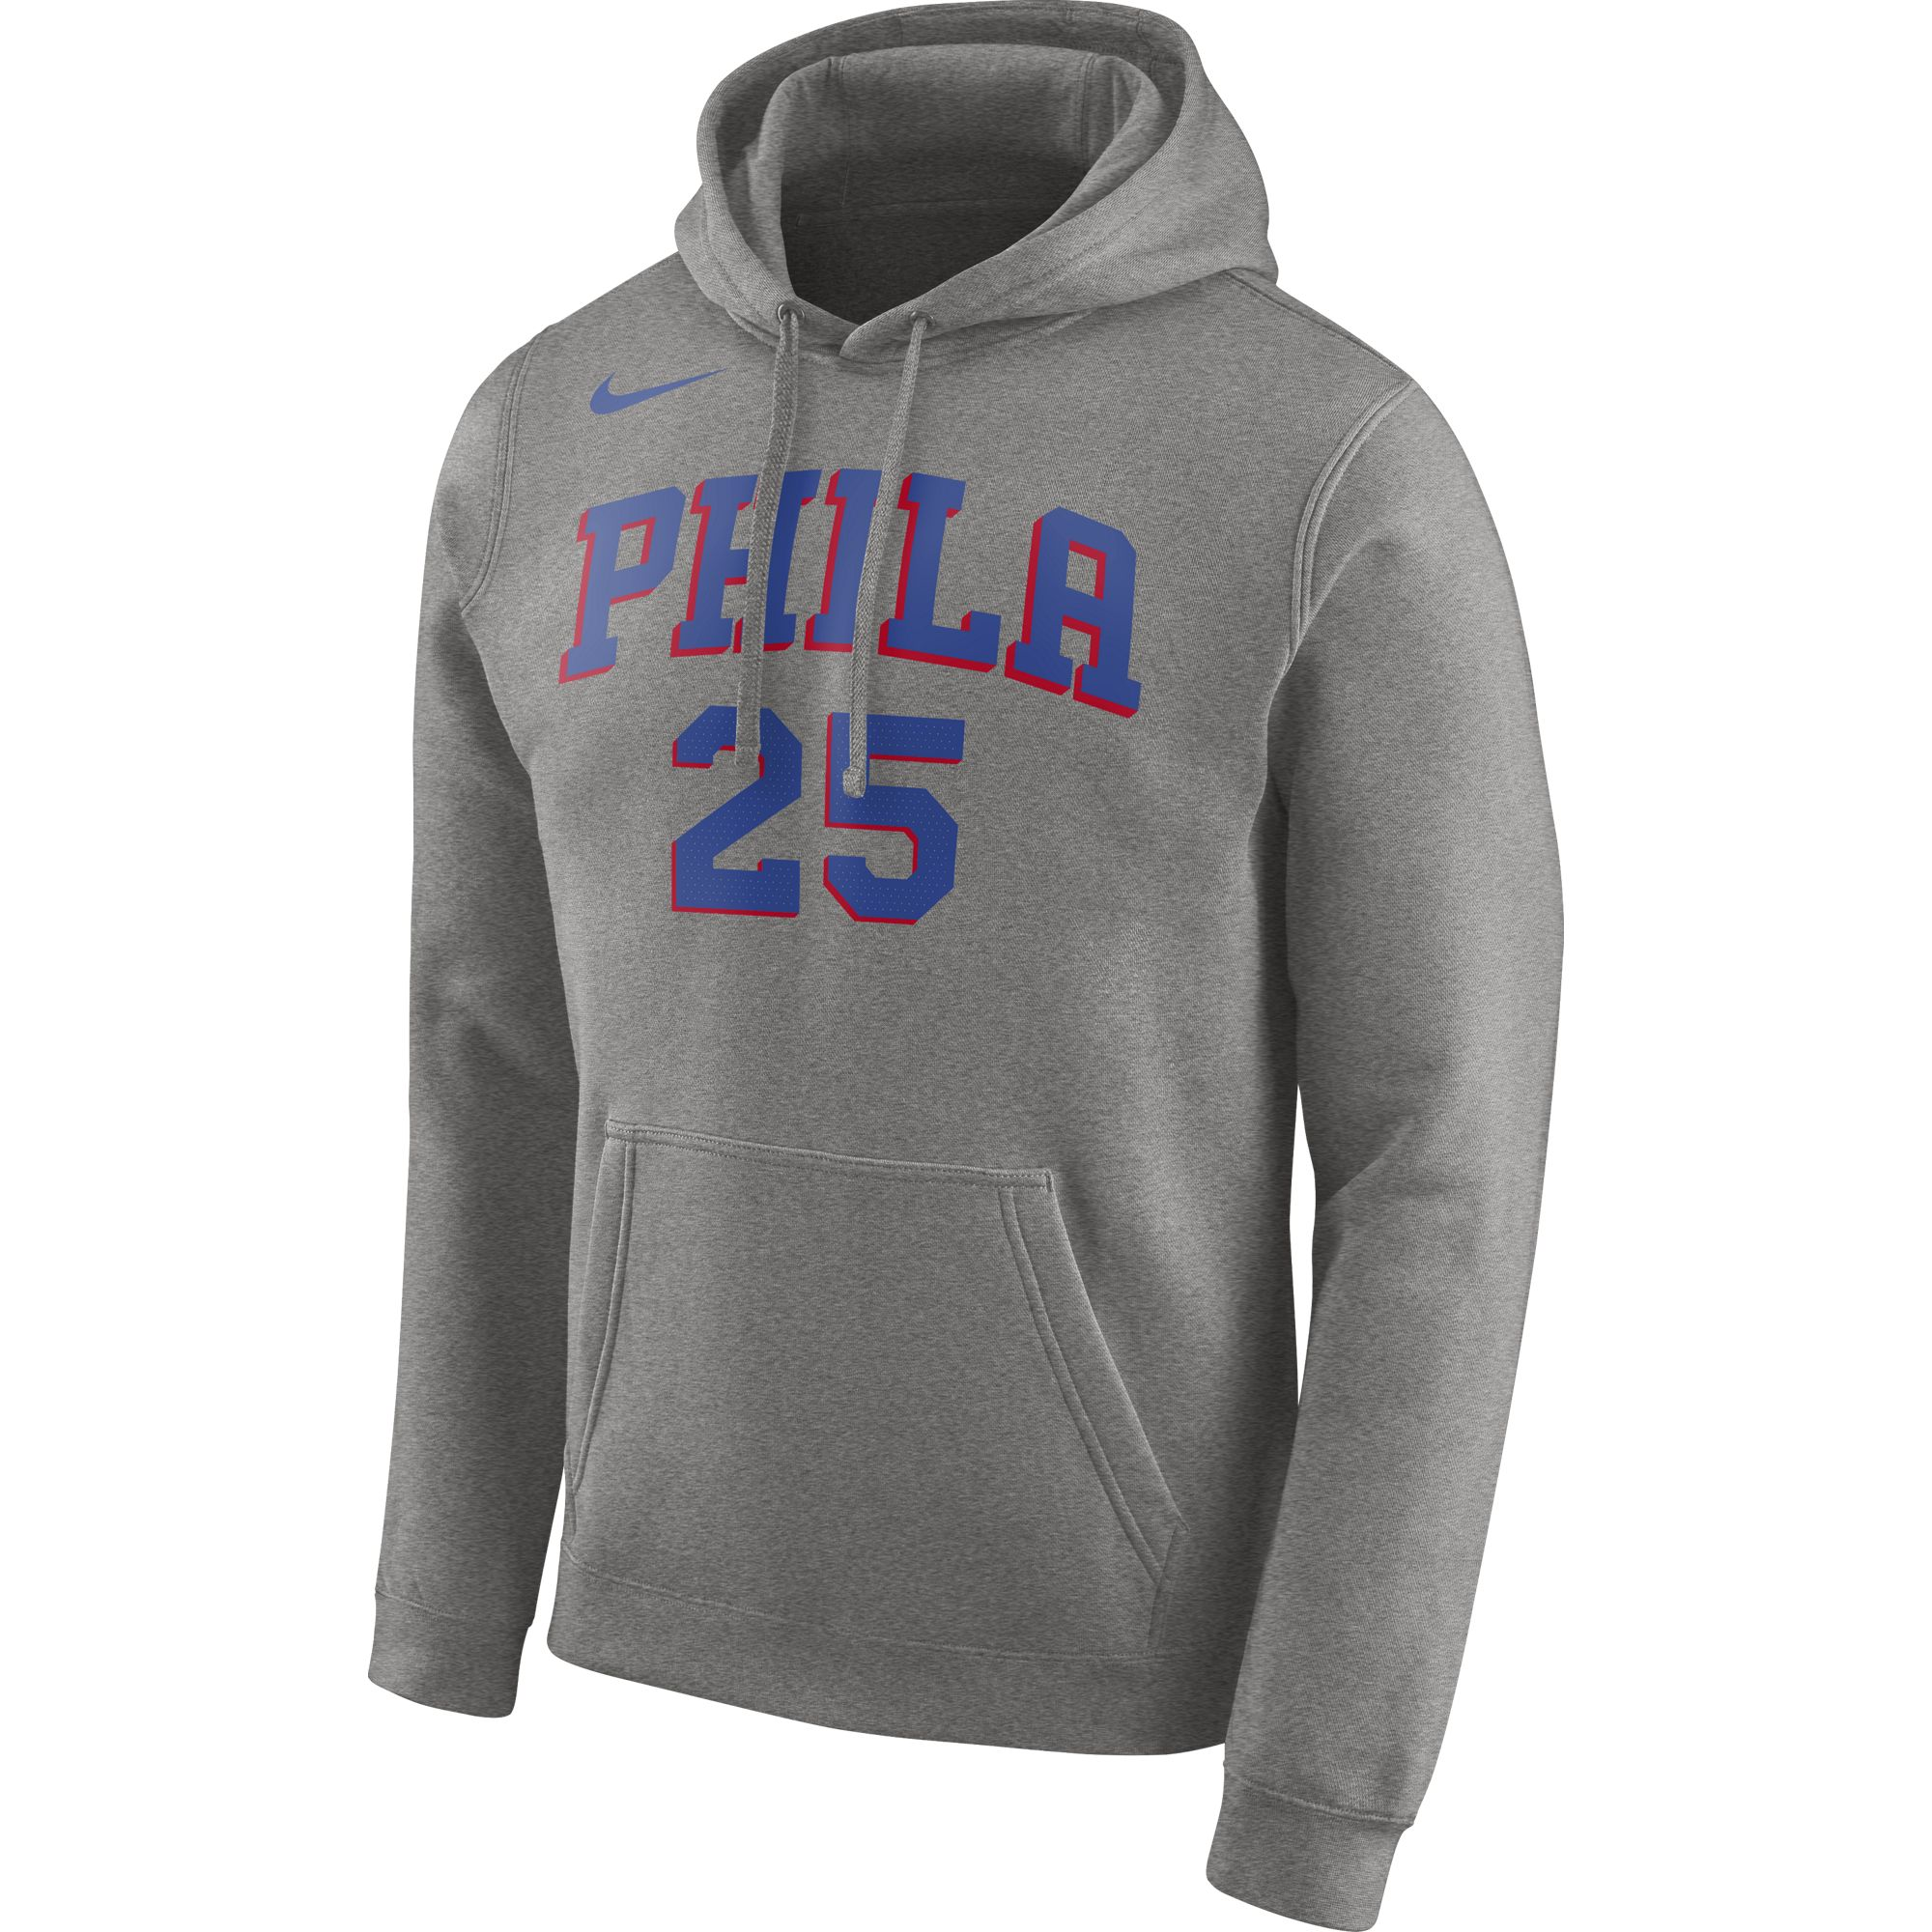 a125878a1 Philadelphia 76ers Men s Ben Simmons Player Hoodie by Nike - Wells ...